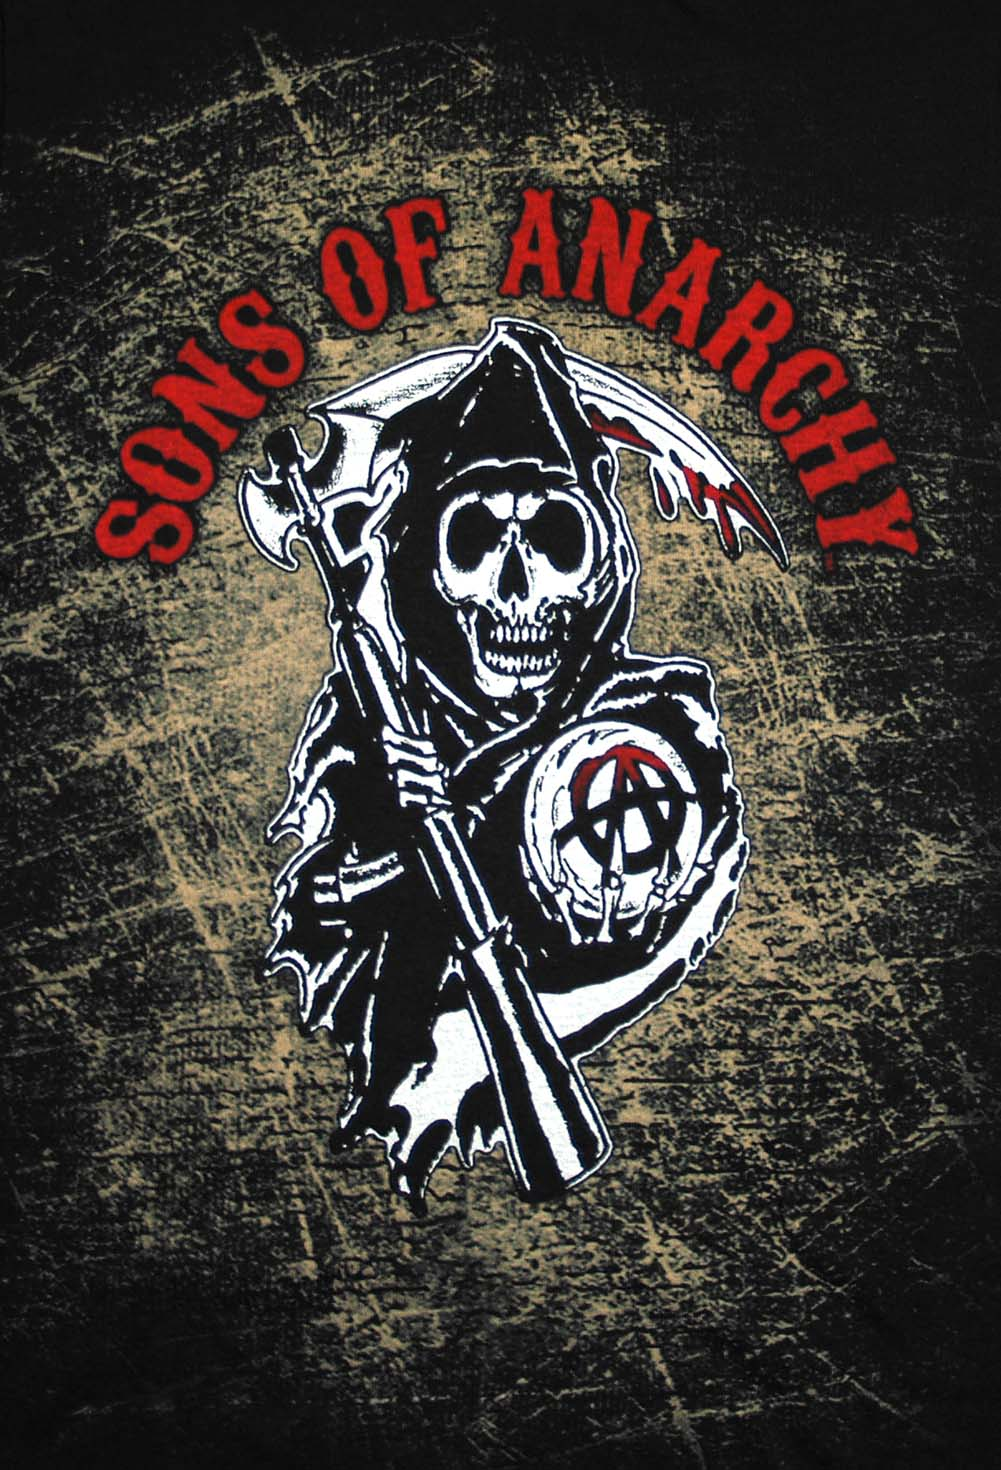 Free Download Sons Of Anarchy Wallpaper 1001x1470 For Your